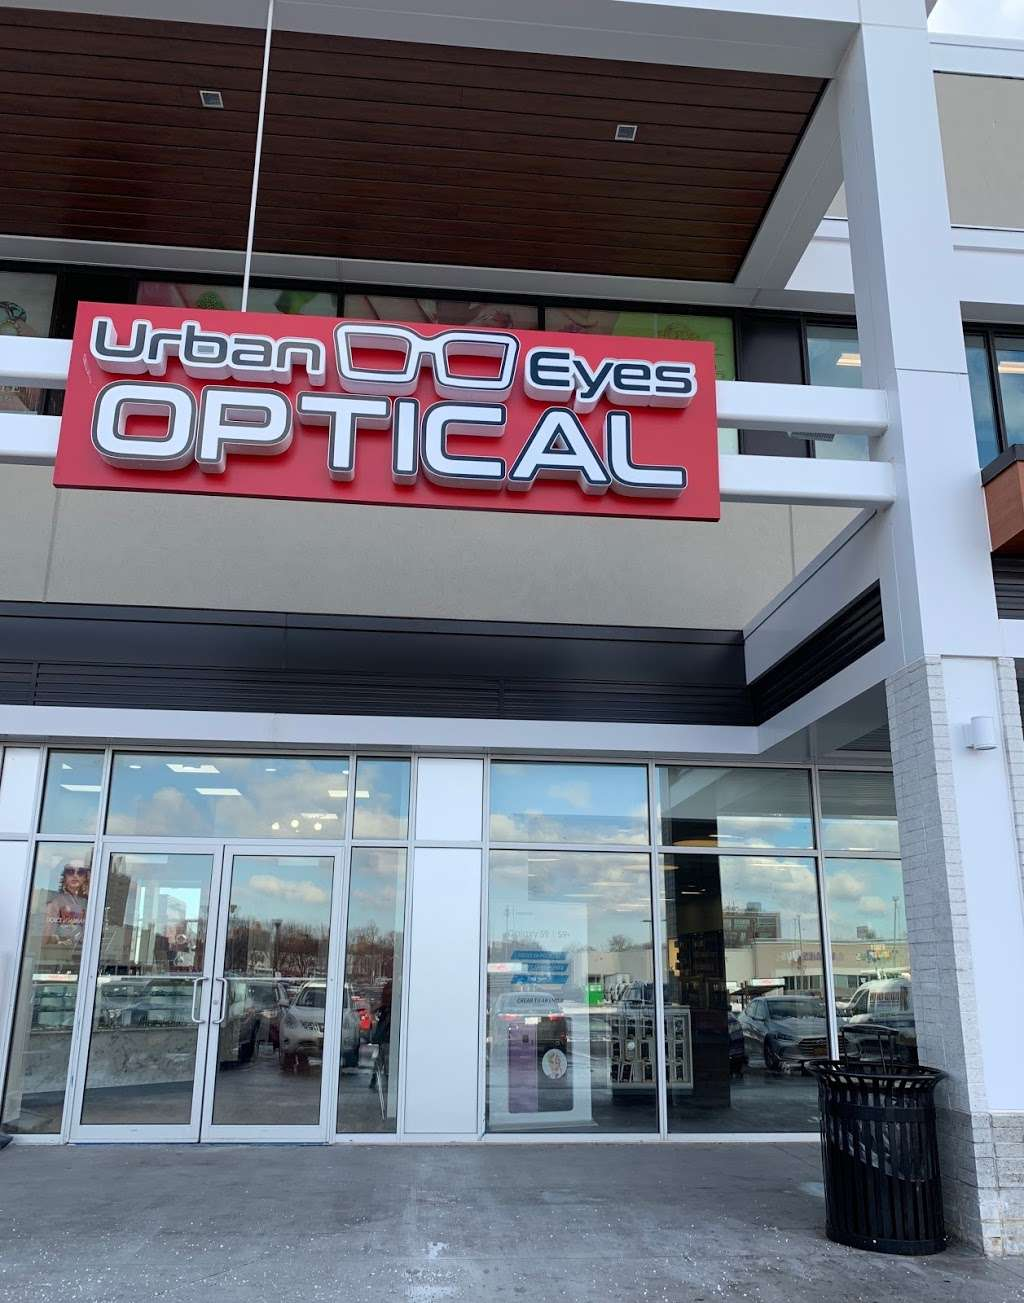 Urban Eyes Optical - health  | Photo 3 of 4 | Address: 1955 Turnbull Ave, The Bronx, NY 10473, USA | Phone: (718) 430-9776